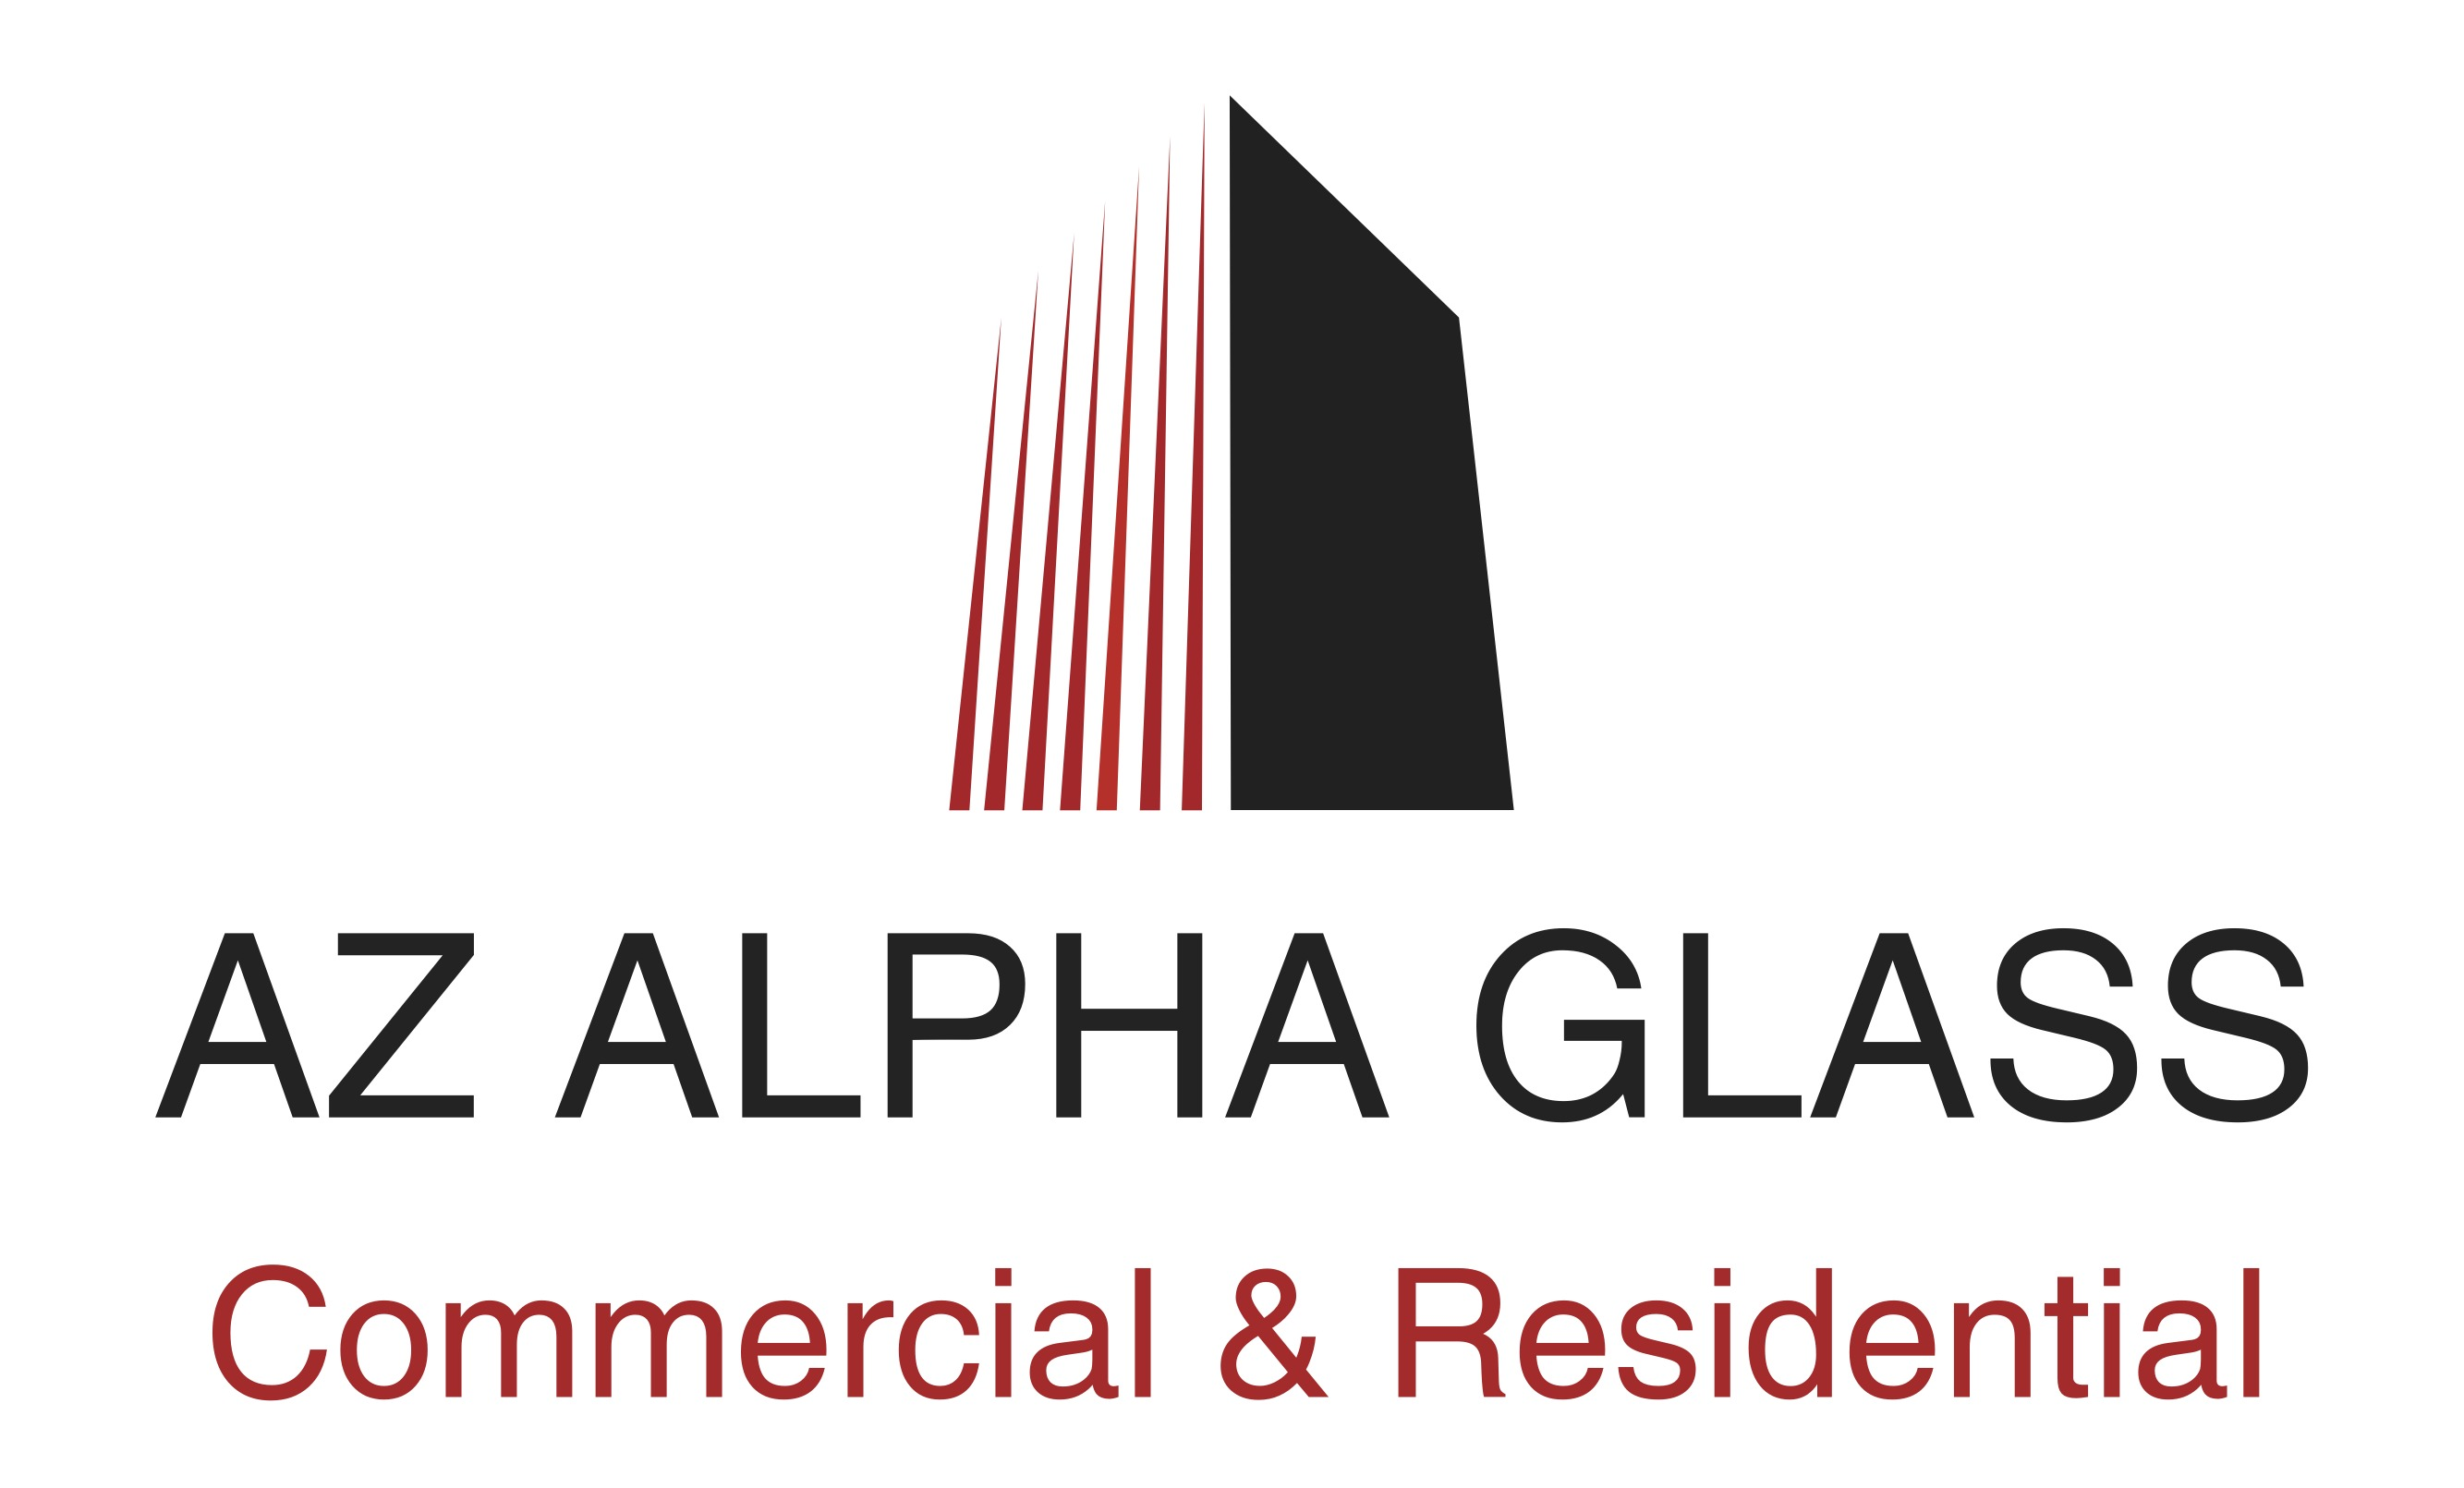 AZ ALPHA GLASS